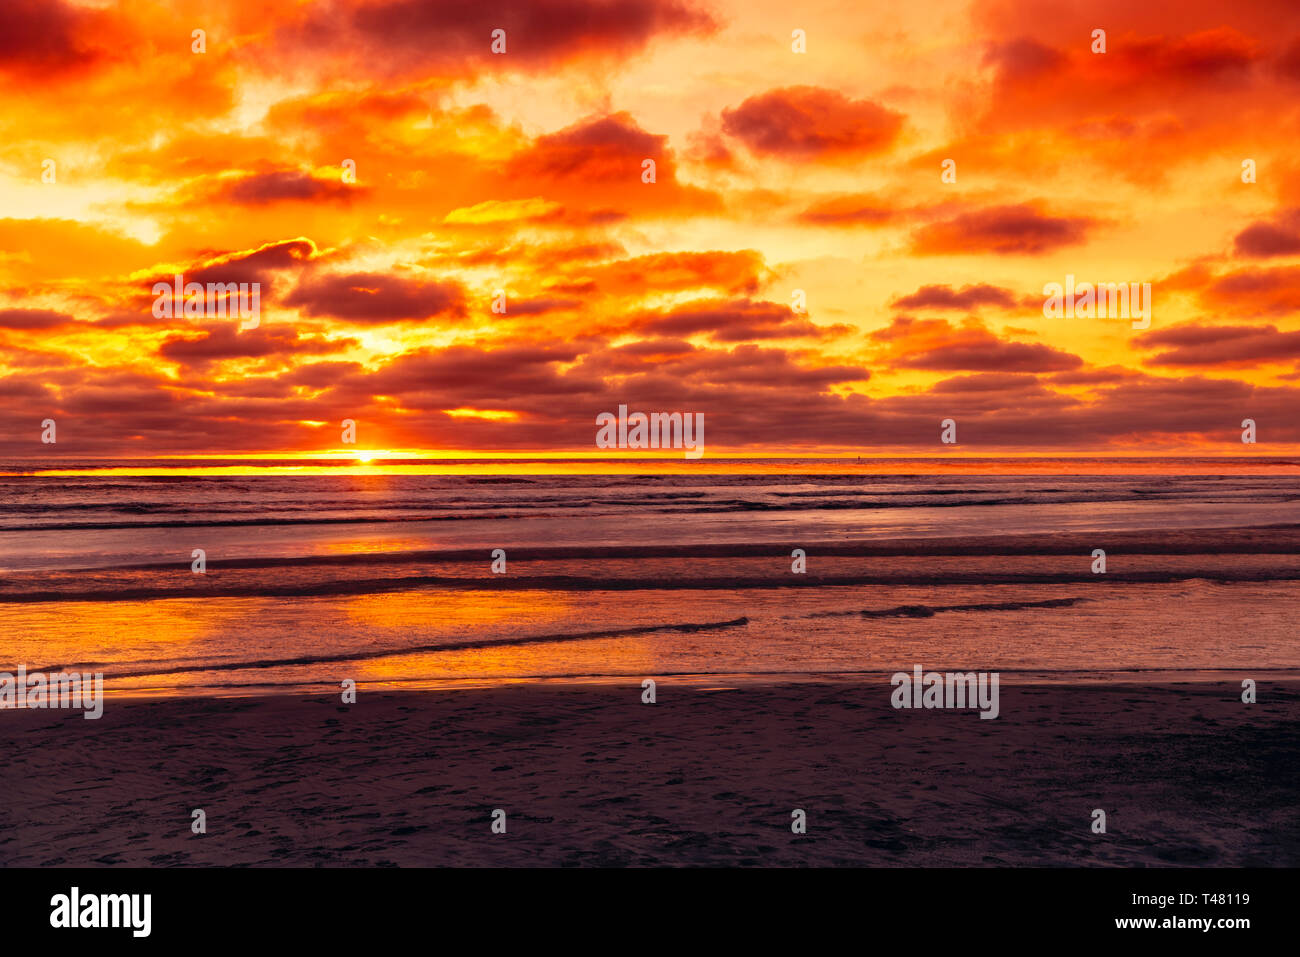 Waves rolling onto beach as sun is setting into ocean beyond, orange and yellow sky. - Stock Image